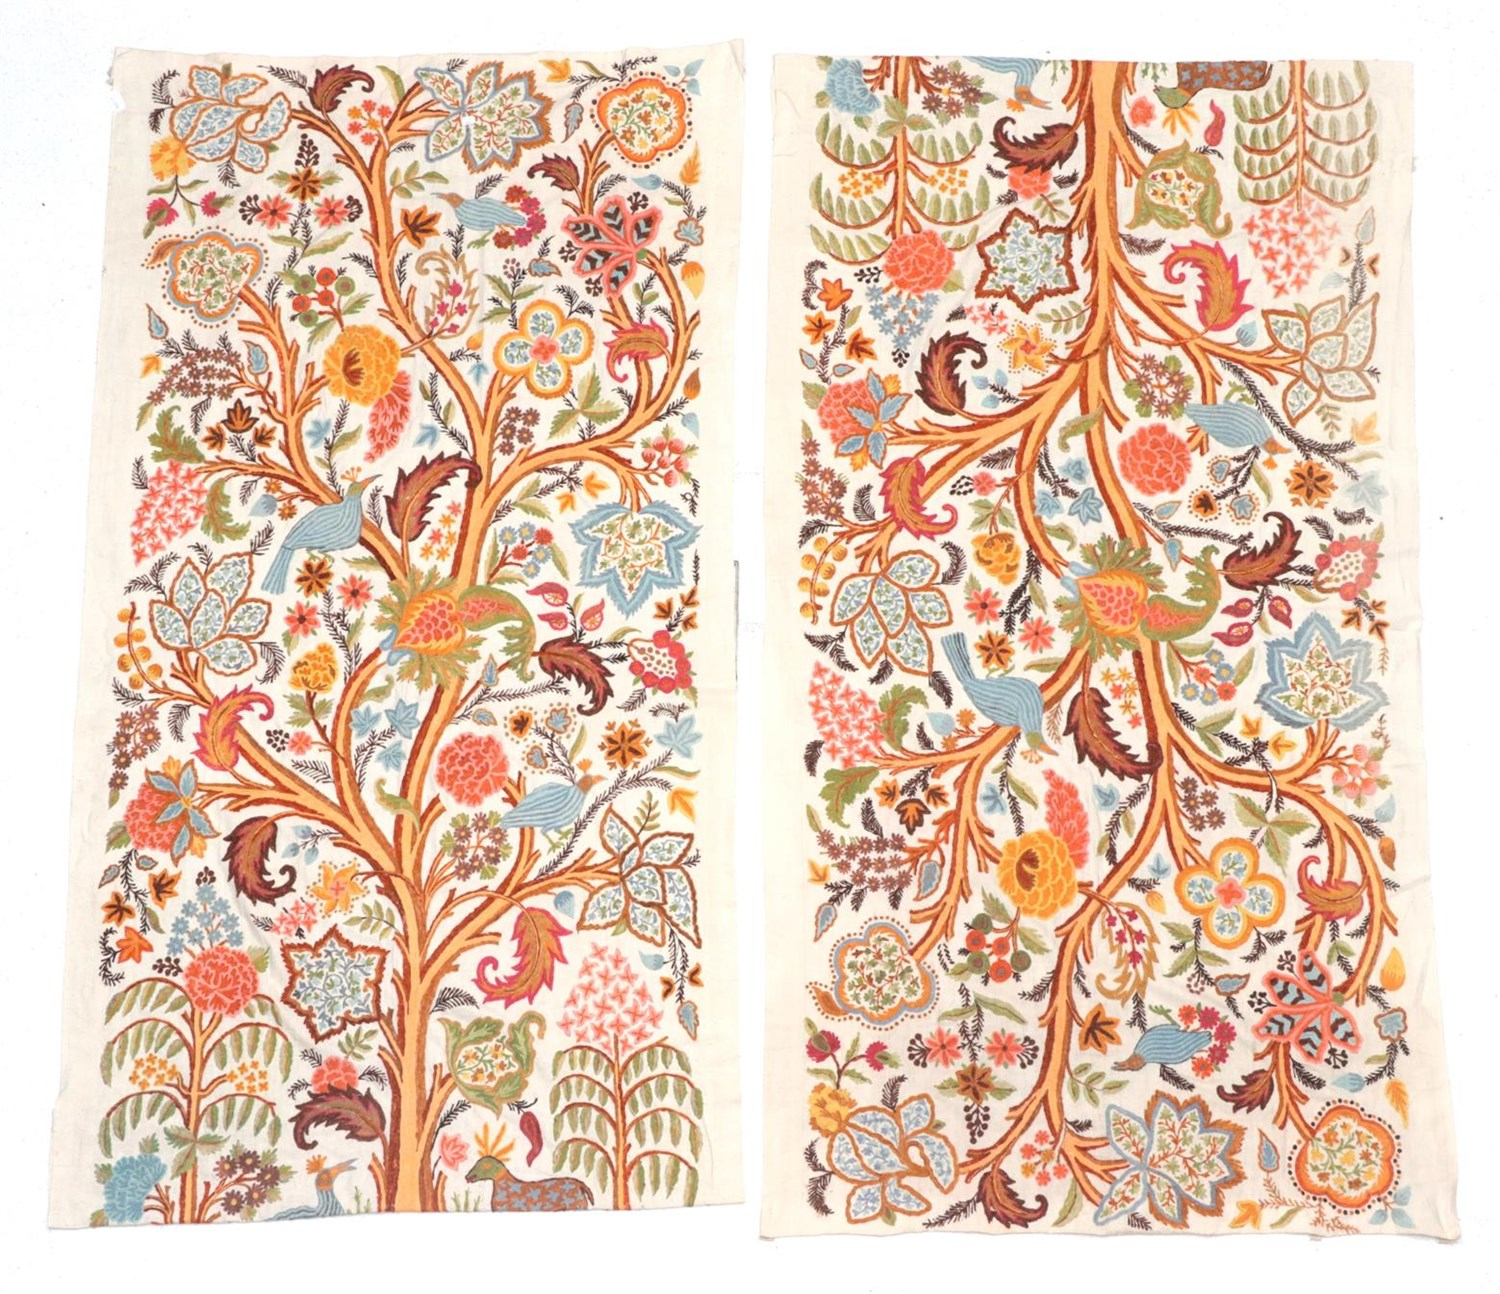 Lot 6017 - Pair of Crewelwork Panels/Curtains, depicting a central tree hung with large decorative leaves...